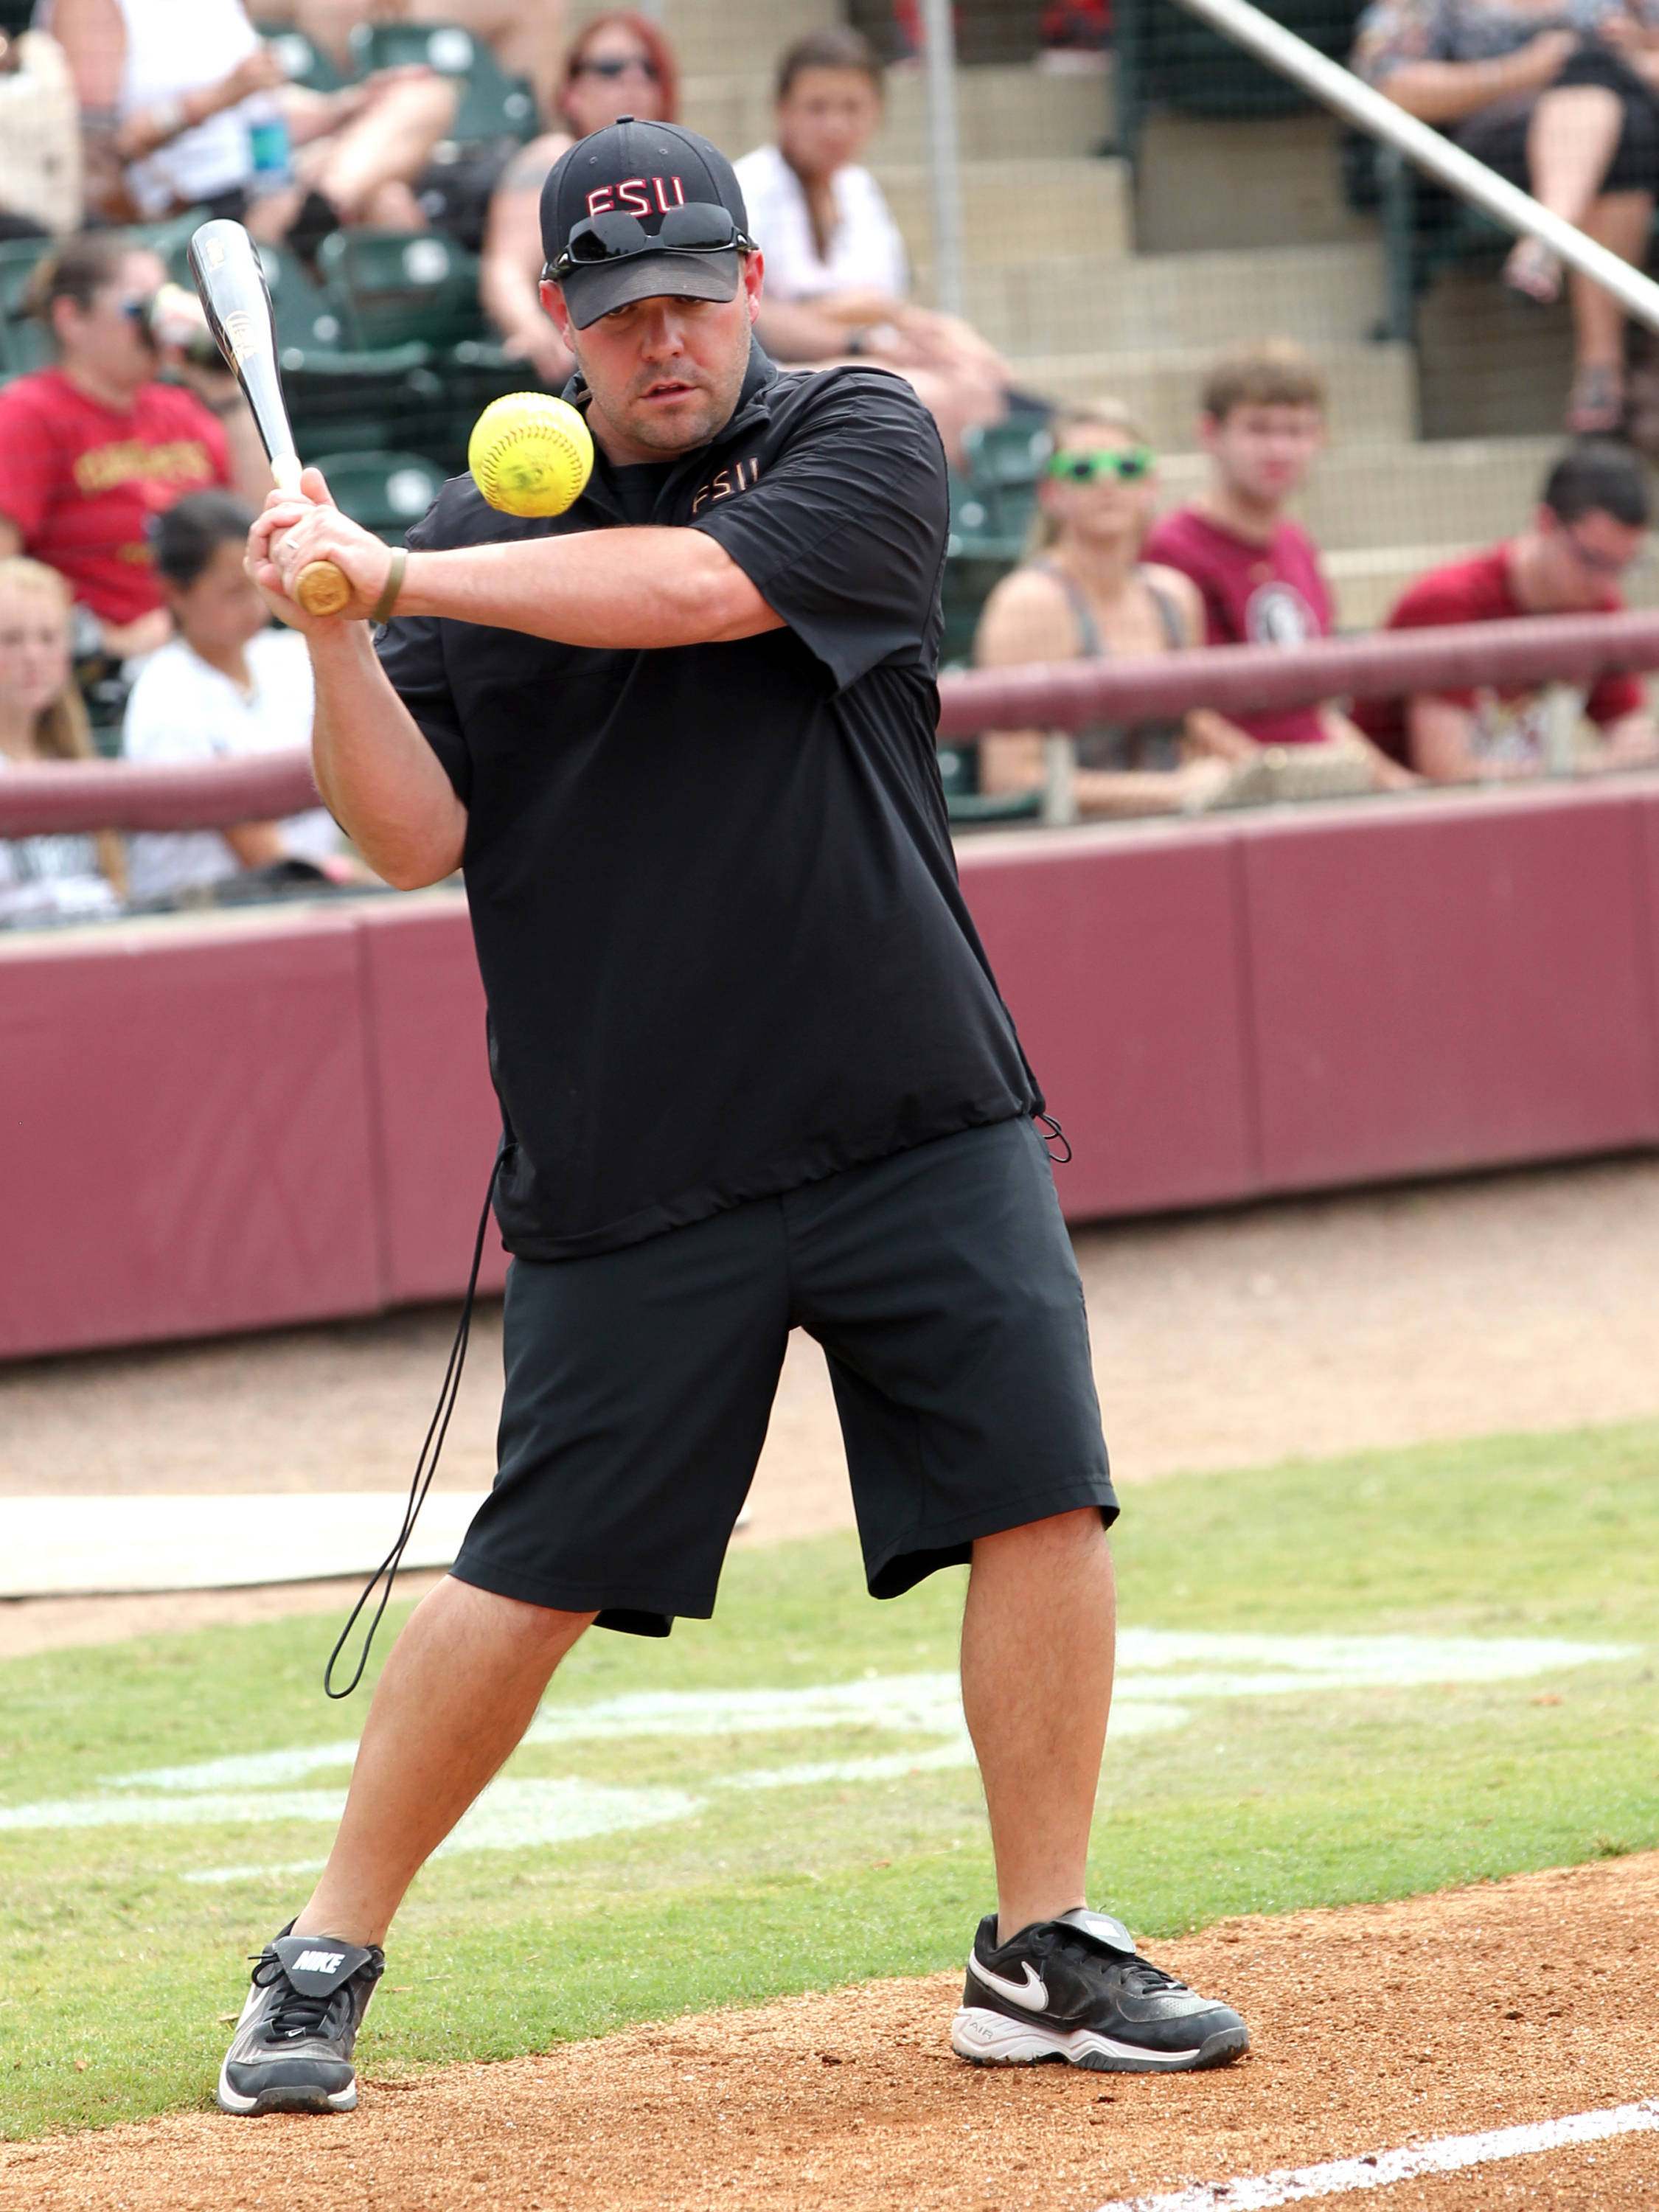 Assistant Coach Craig Snider, FSU VS NC, ACC Championship Semifinals, Tallahassee, FL,  05/10/13 . (Photo by Steve Musco)